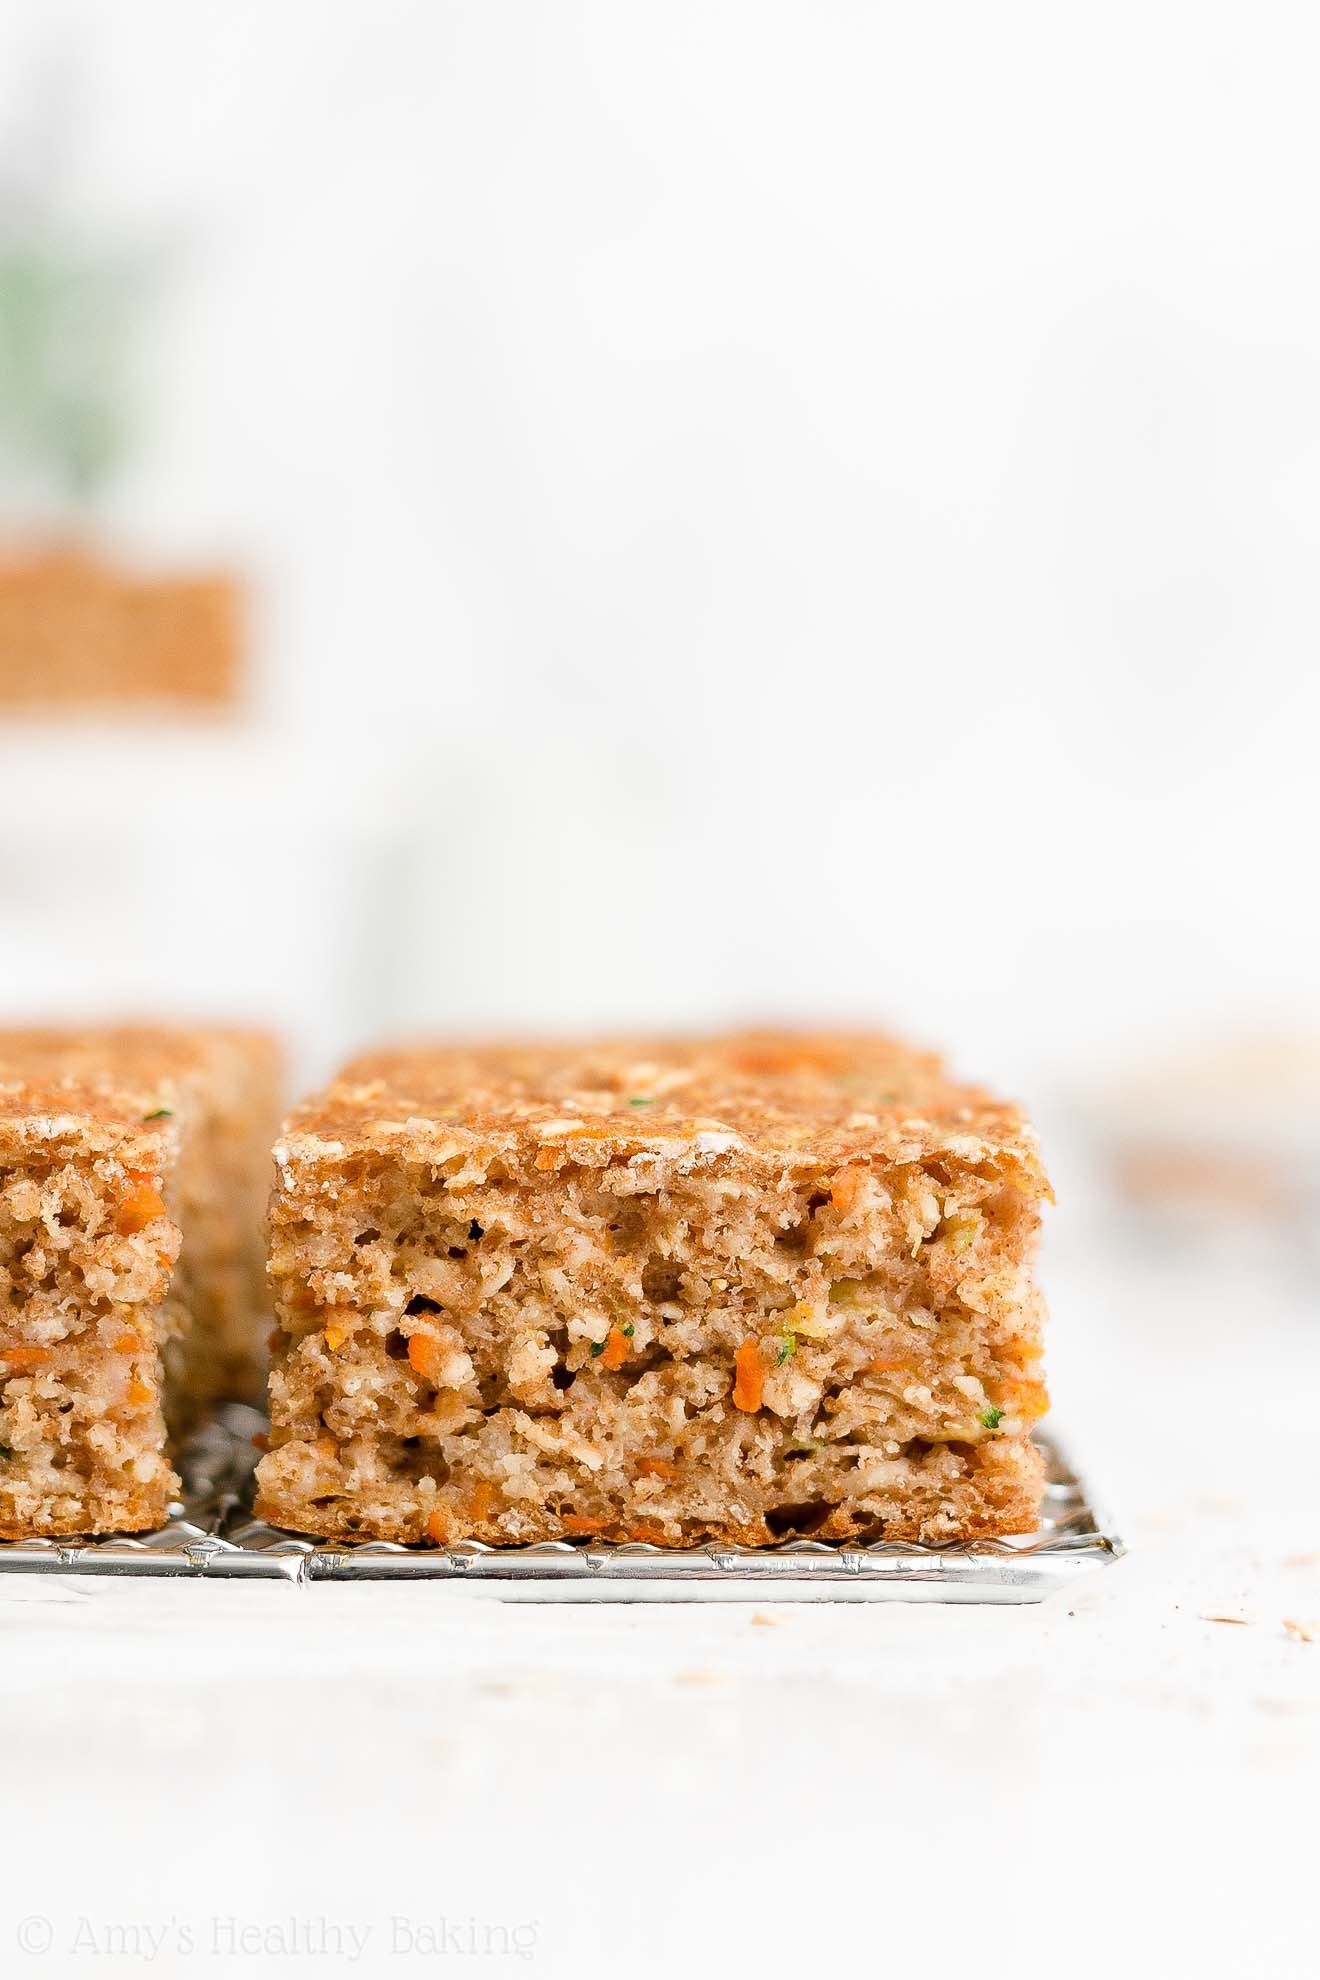 Easy Healthy Clean Eating Greek Yogurt Moist Carrot Zucchini Oatmeal Snack Cake